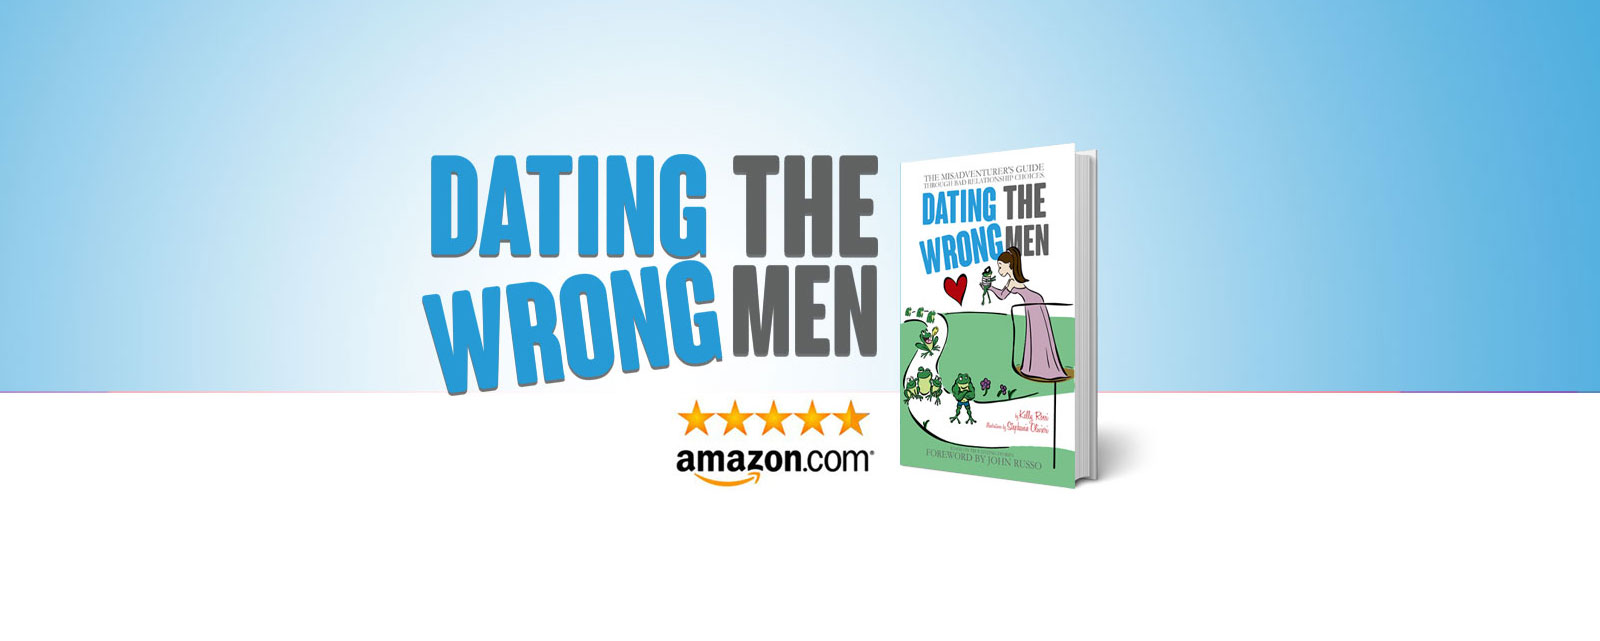 Dating the Wrong Men, the Amazon best selling book by Kelly Rossi